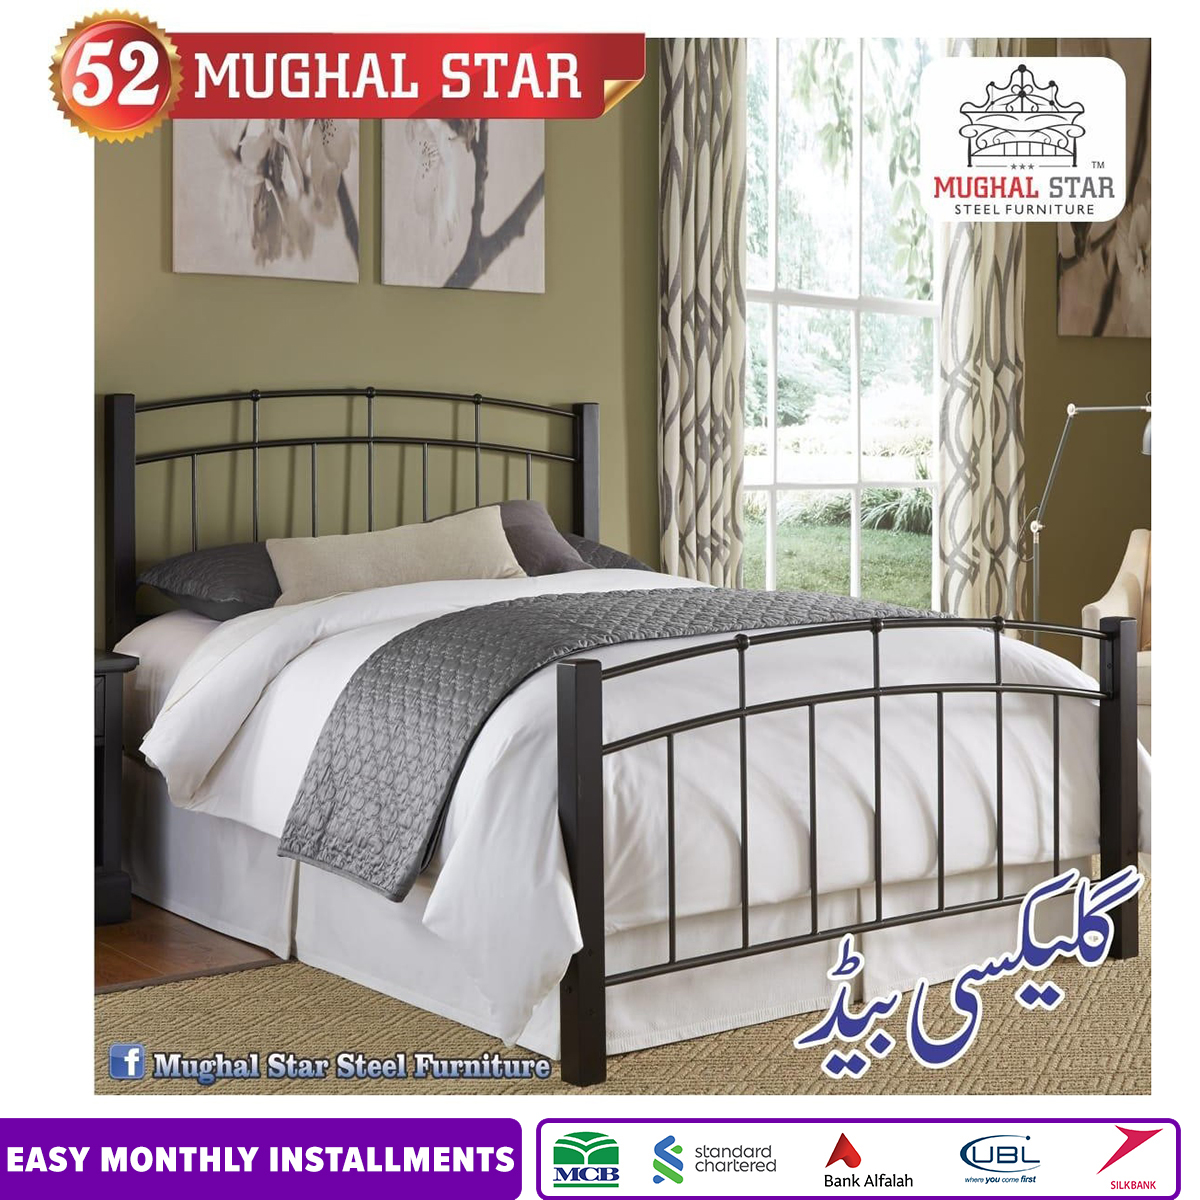 Galaxy Bed, Iron Bed, Mughal Star Steel Furniture